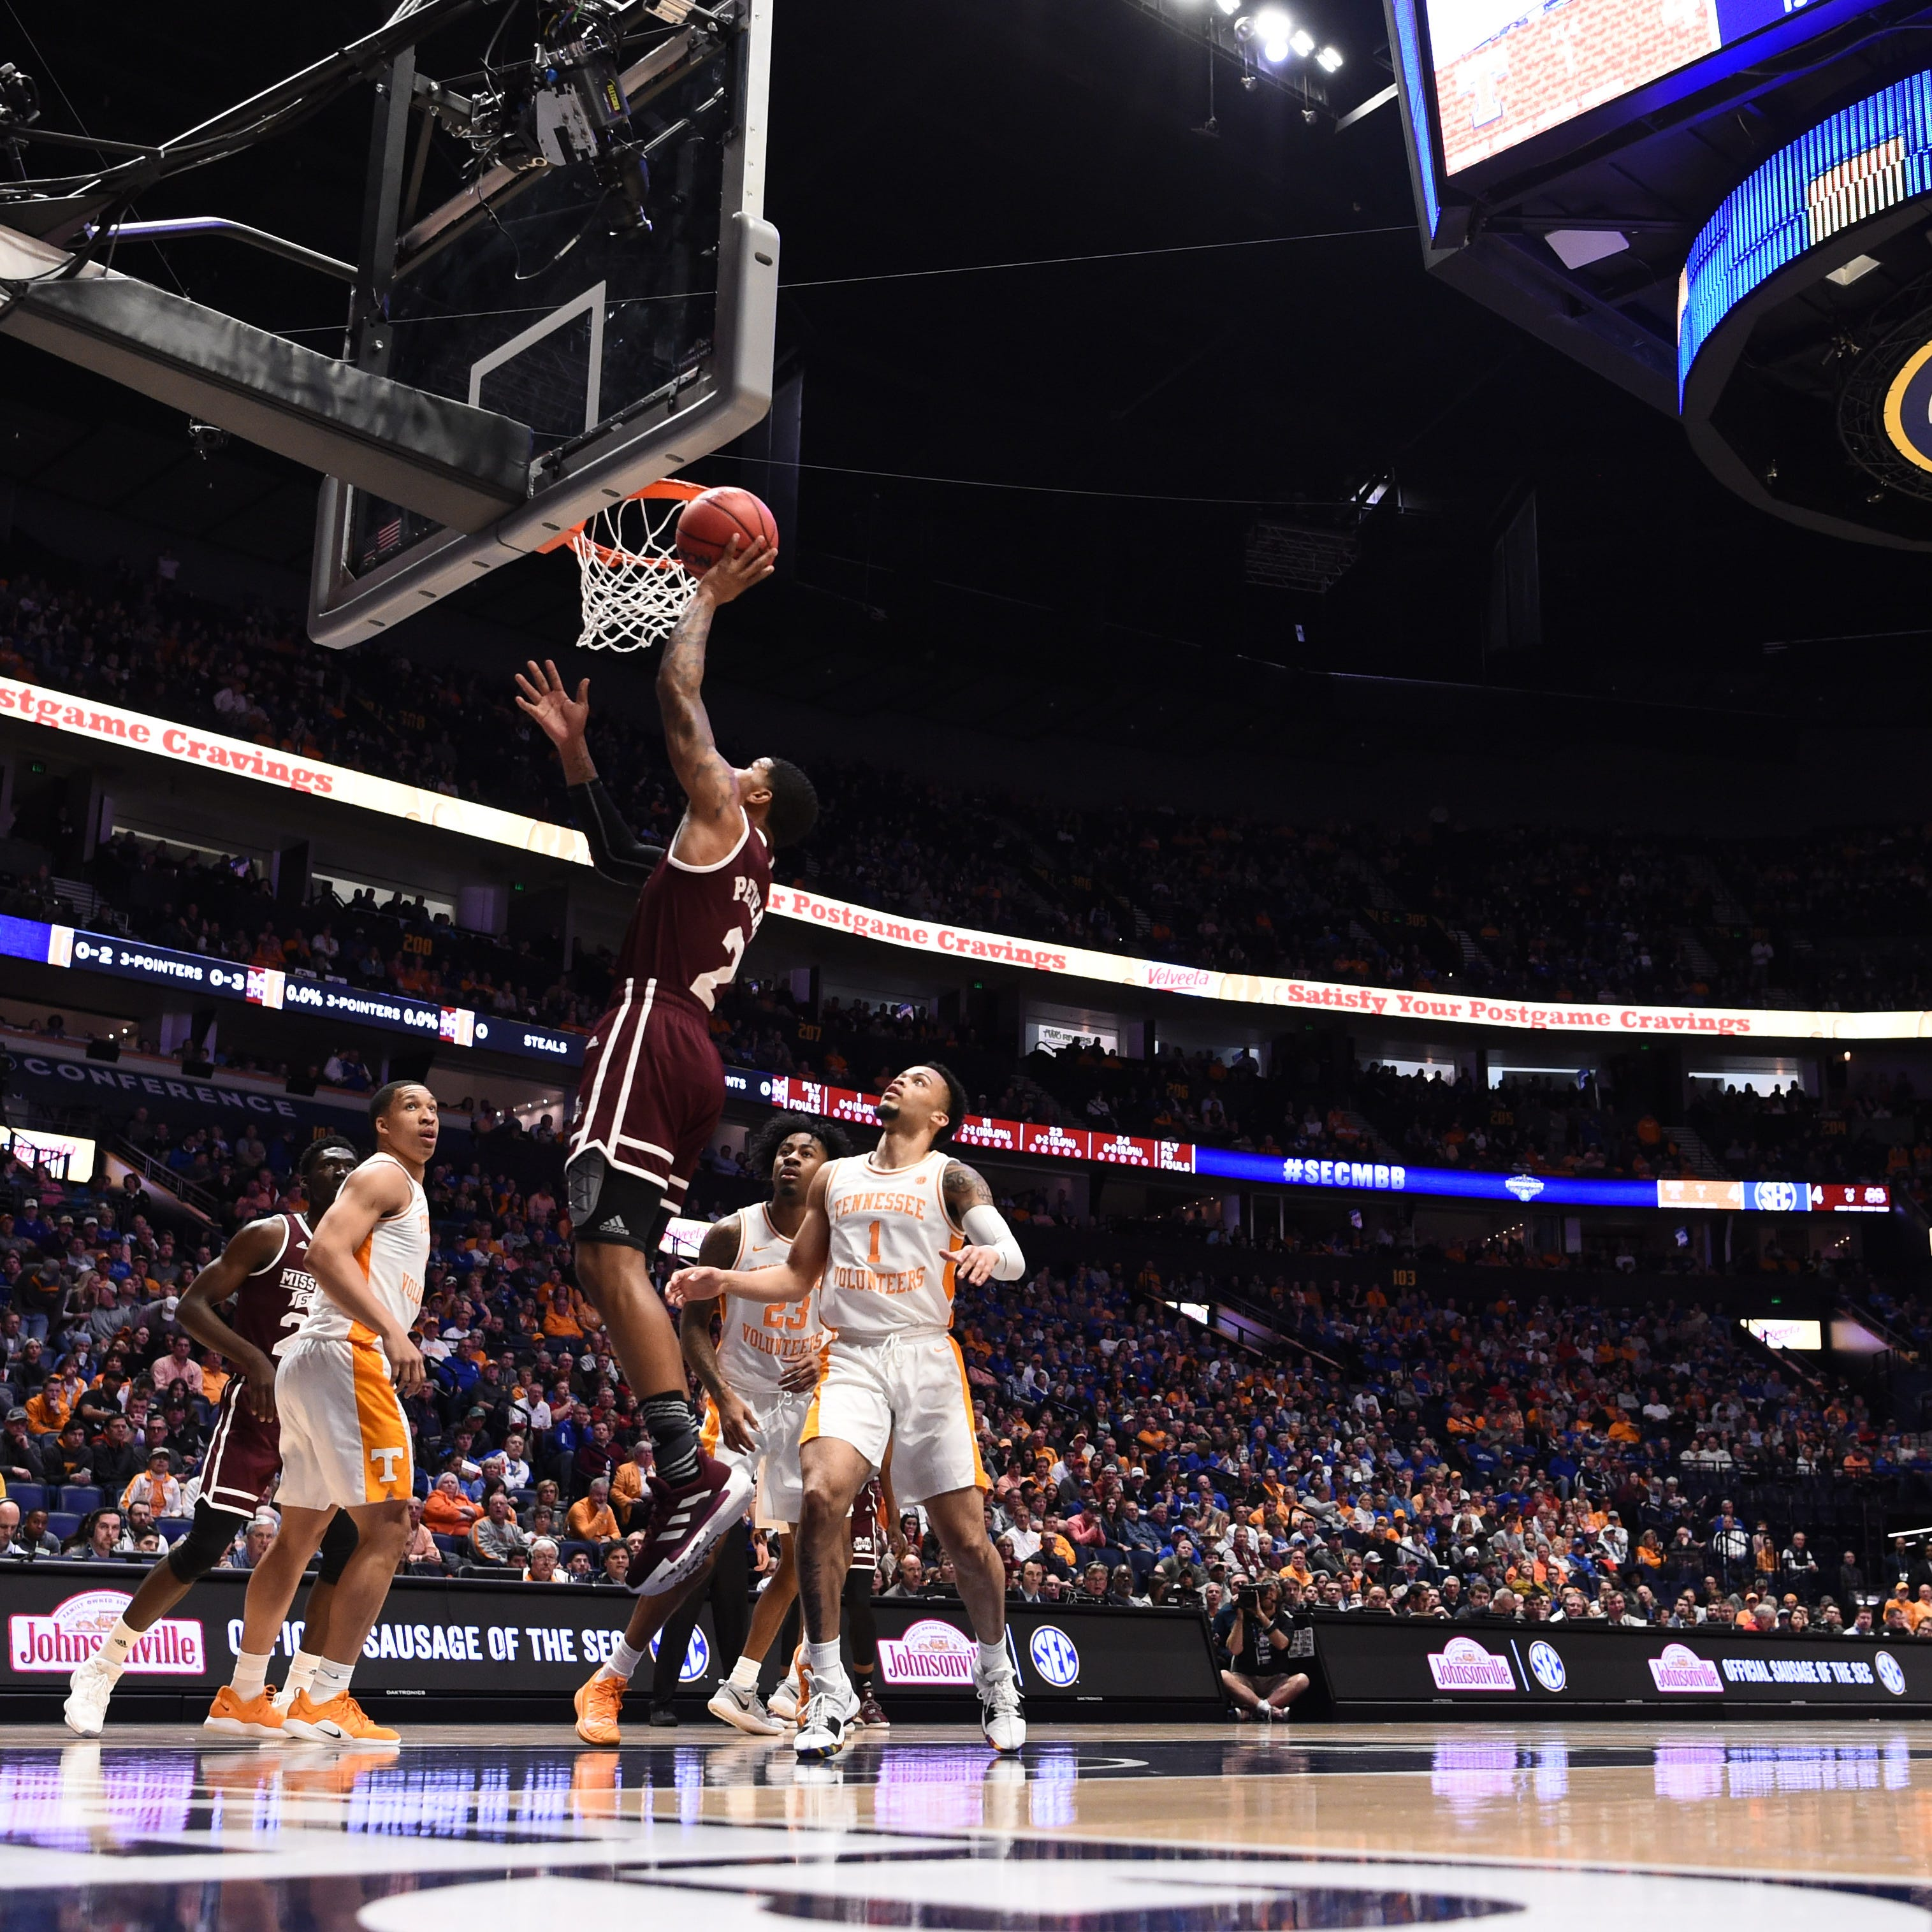 NCAA Tournament: How to watch, stream, listen to Mississippi State vs. Liberty